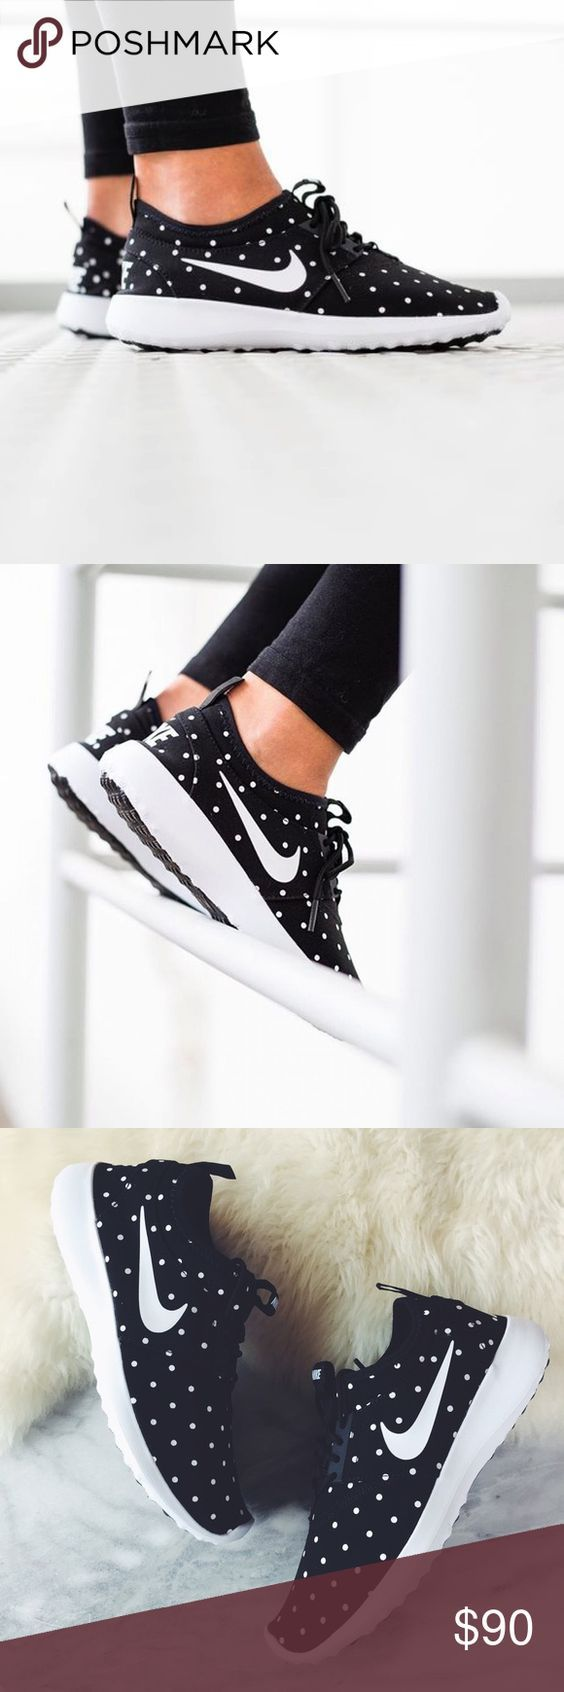 NIKE WOMENS JUVENATE POLKA DOT SHOES